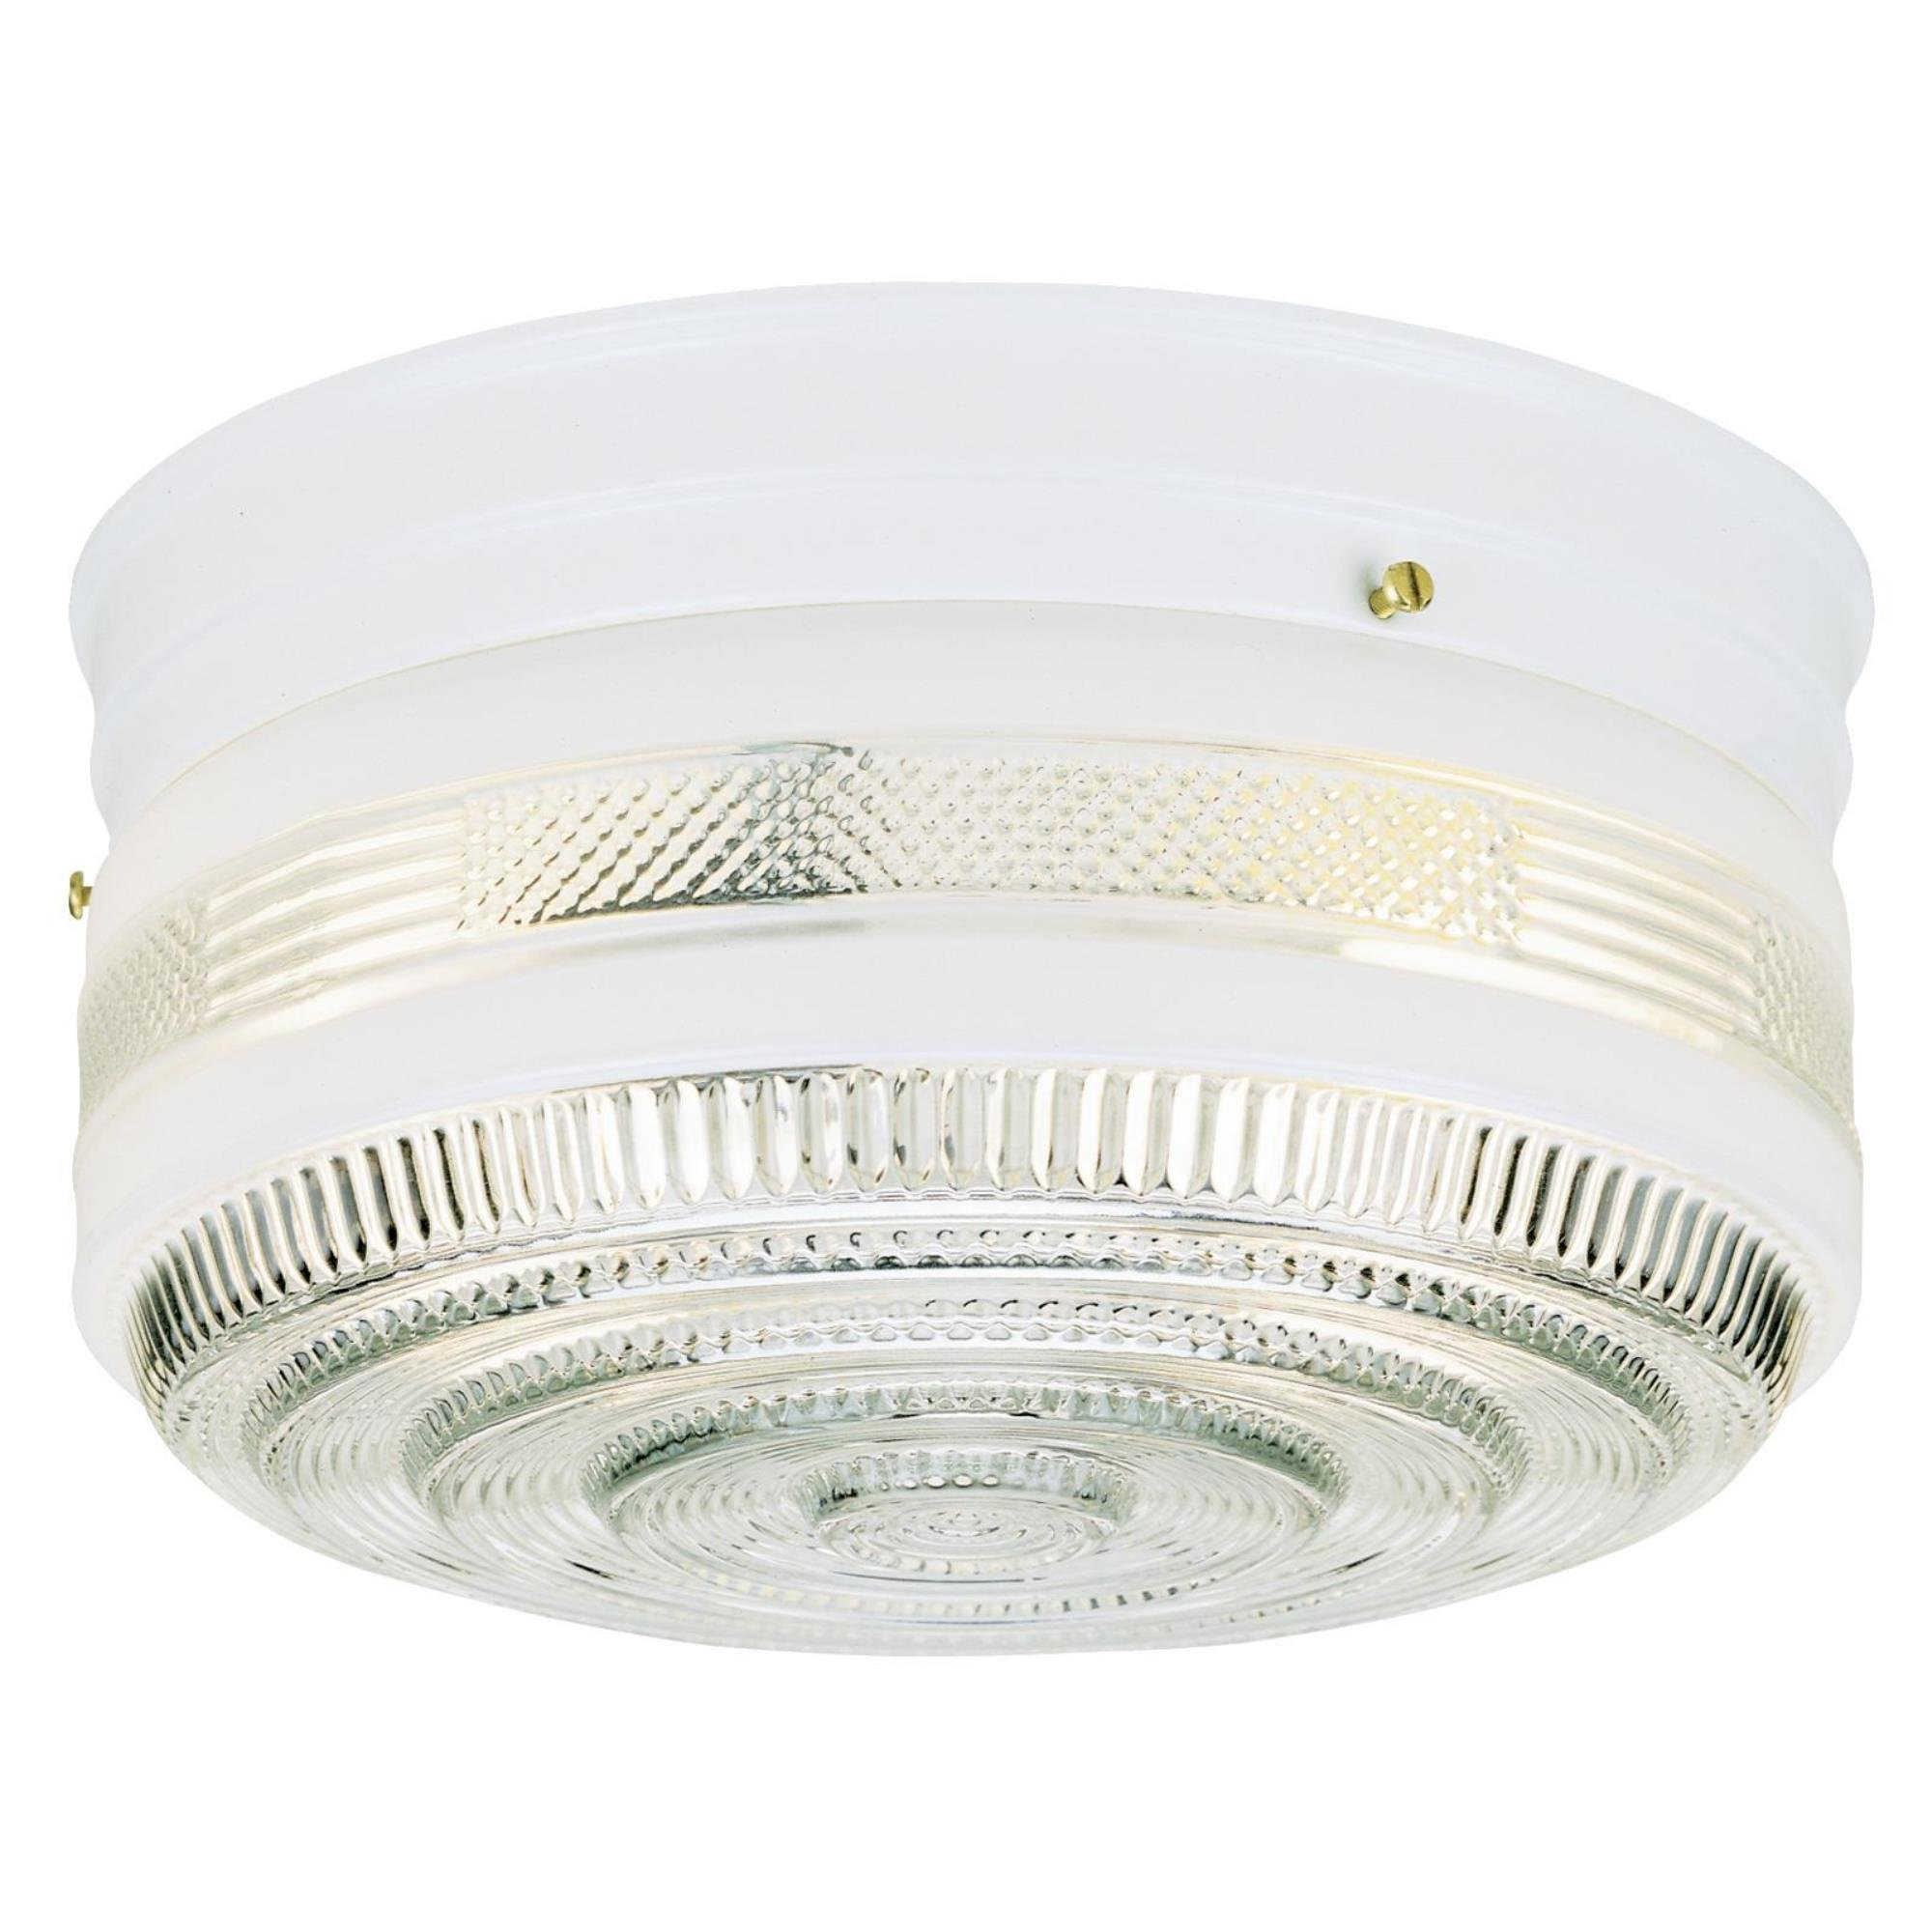 Westinghouse 6620400 One-Light Flush-Mount Interior Ceiling Fixture, White Finish with White and Clear Glass